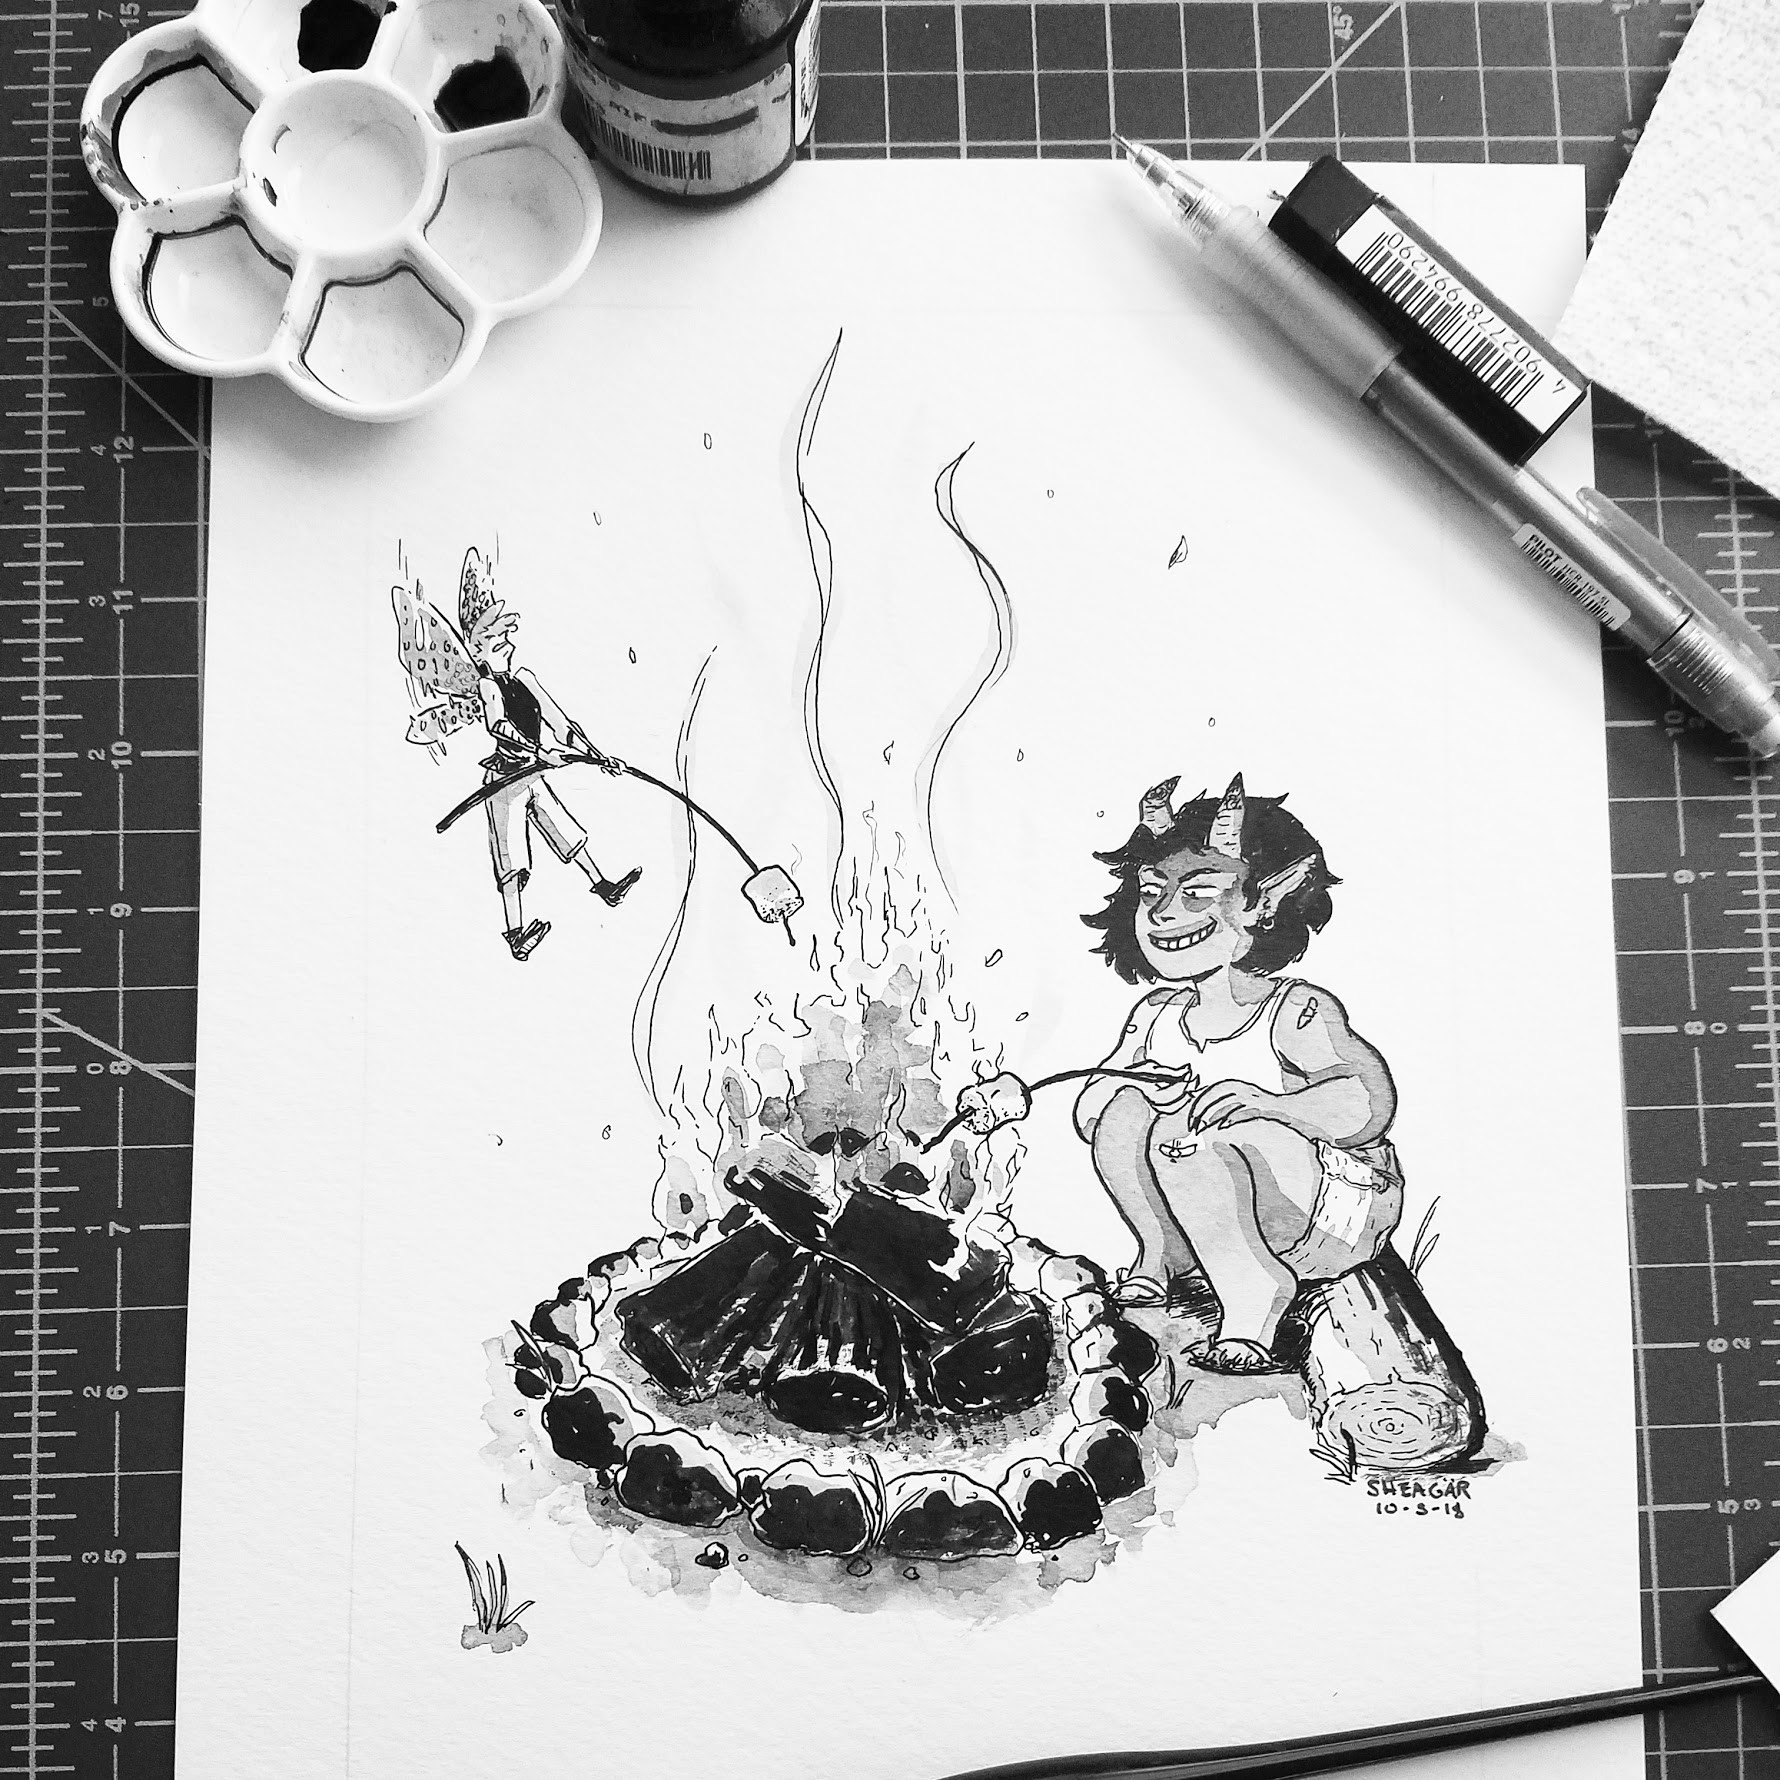 Day 3 - Roasted